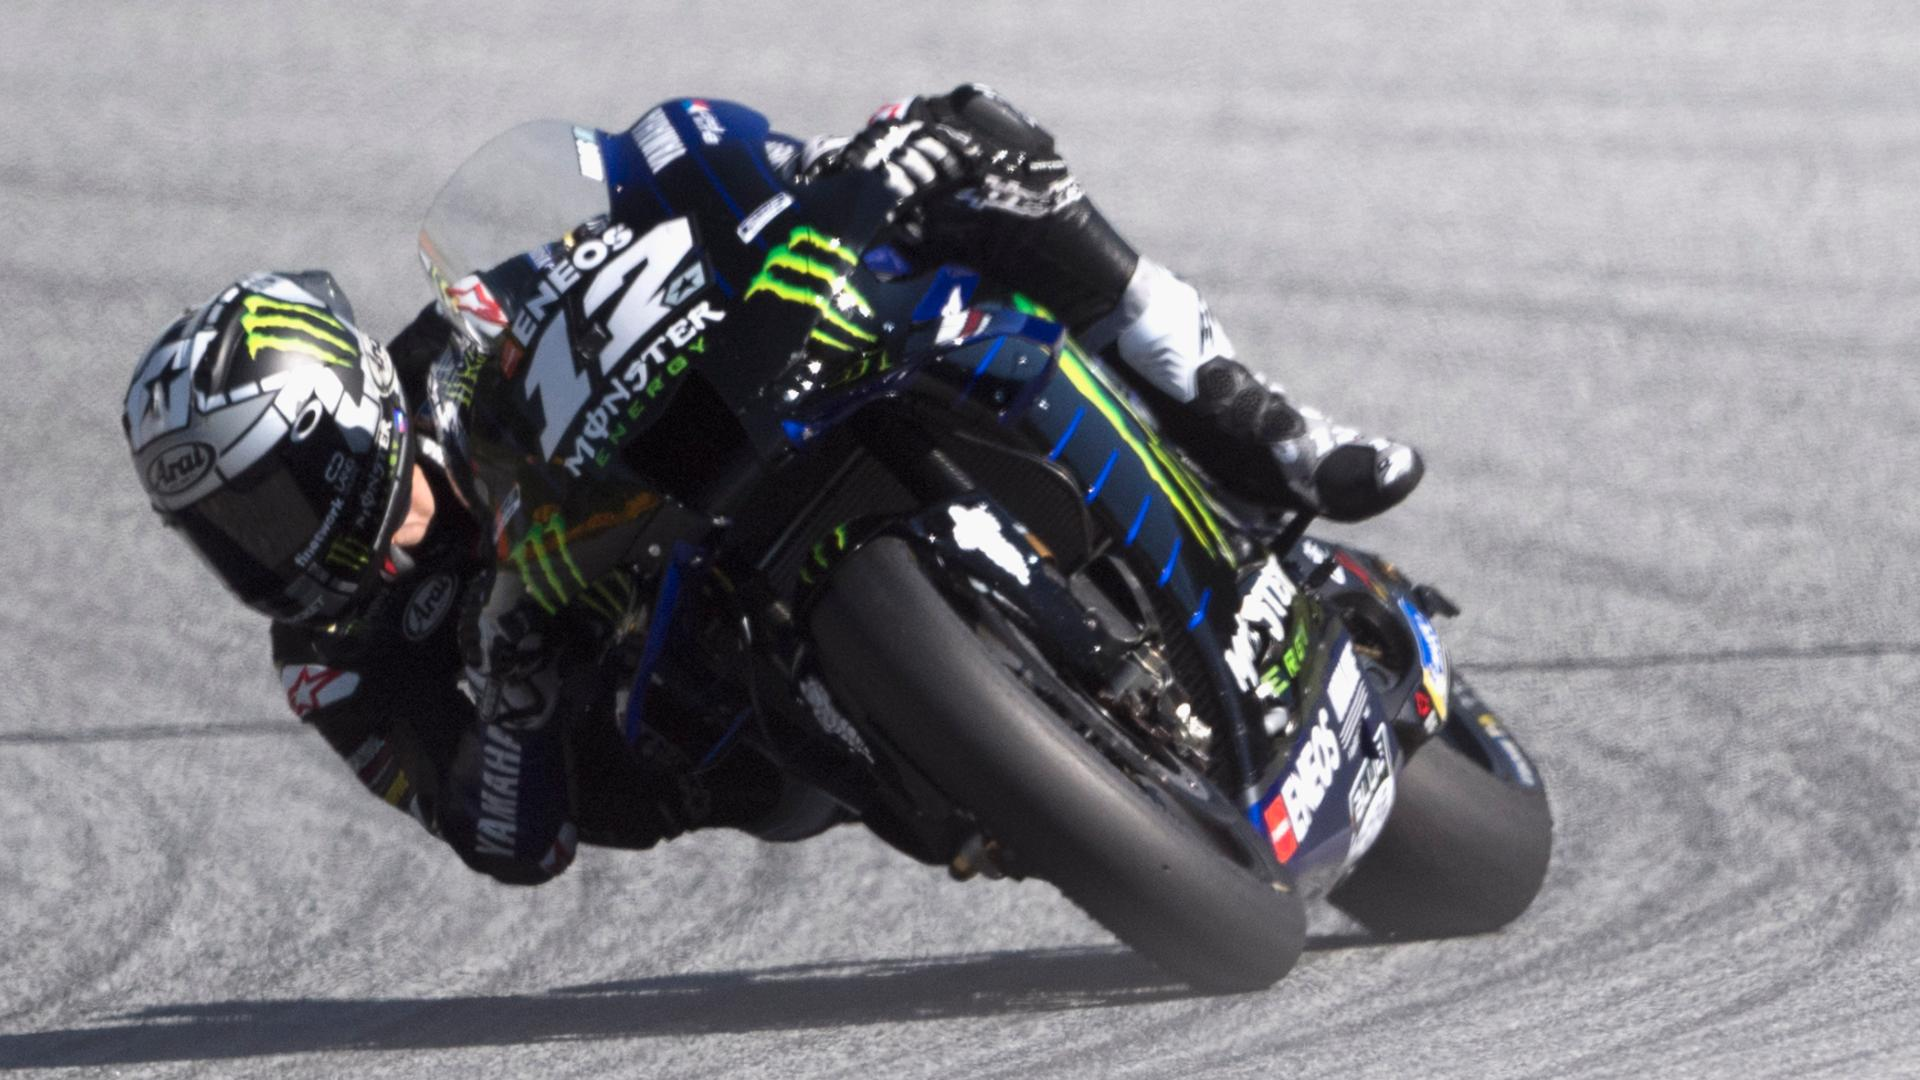 Motogp 2020 Exploded Brake Unlike Anything Vinales Has Faced Before